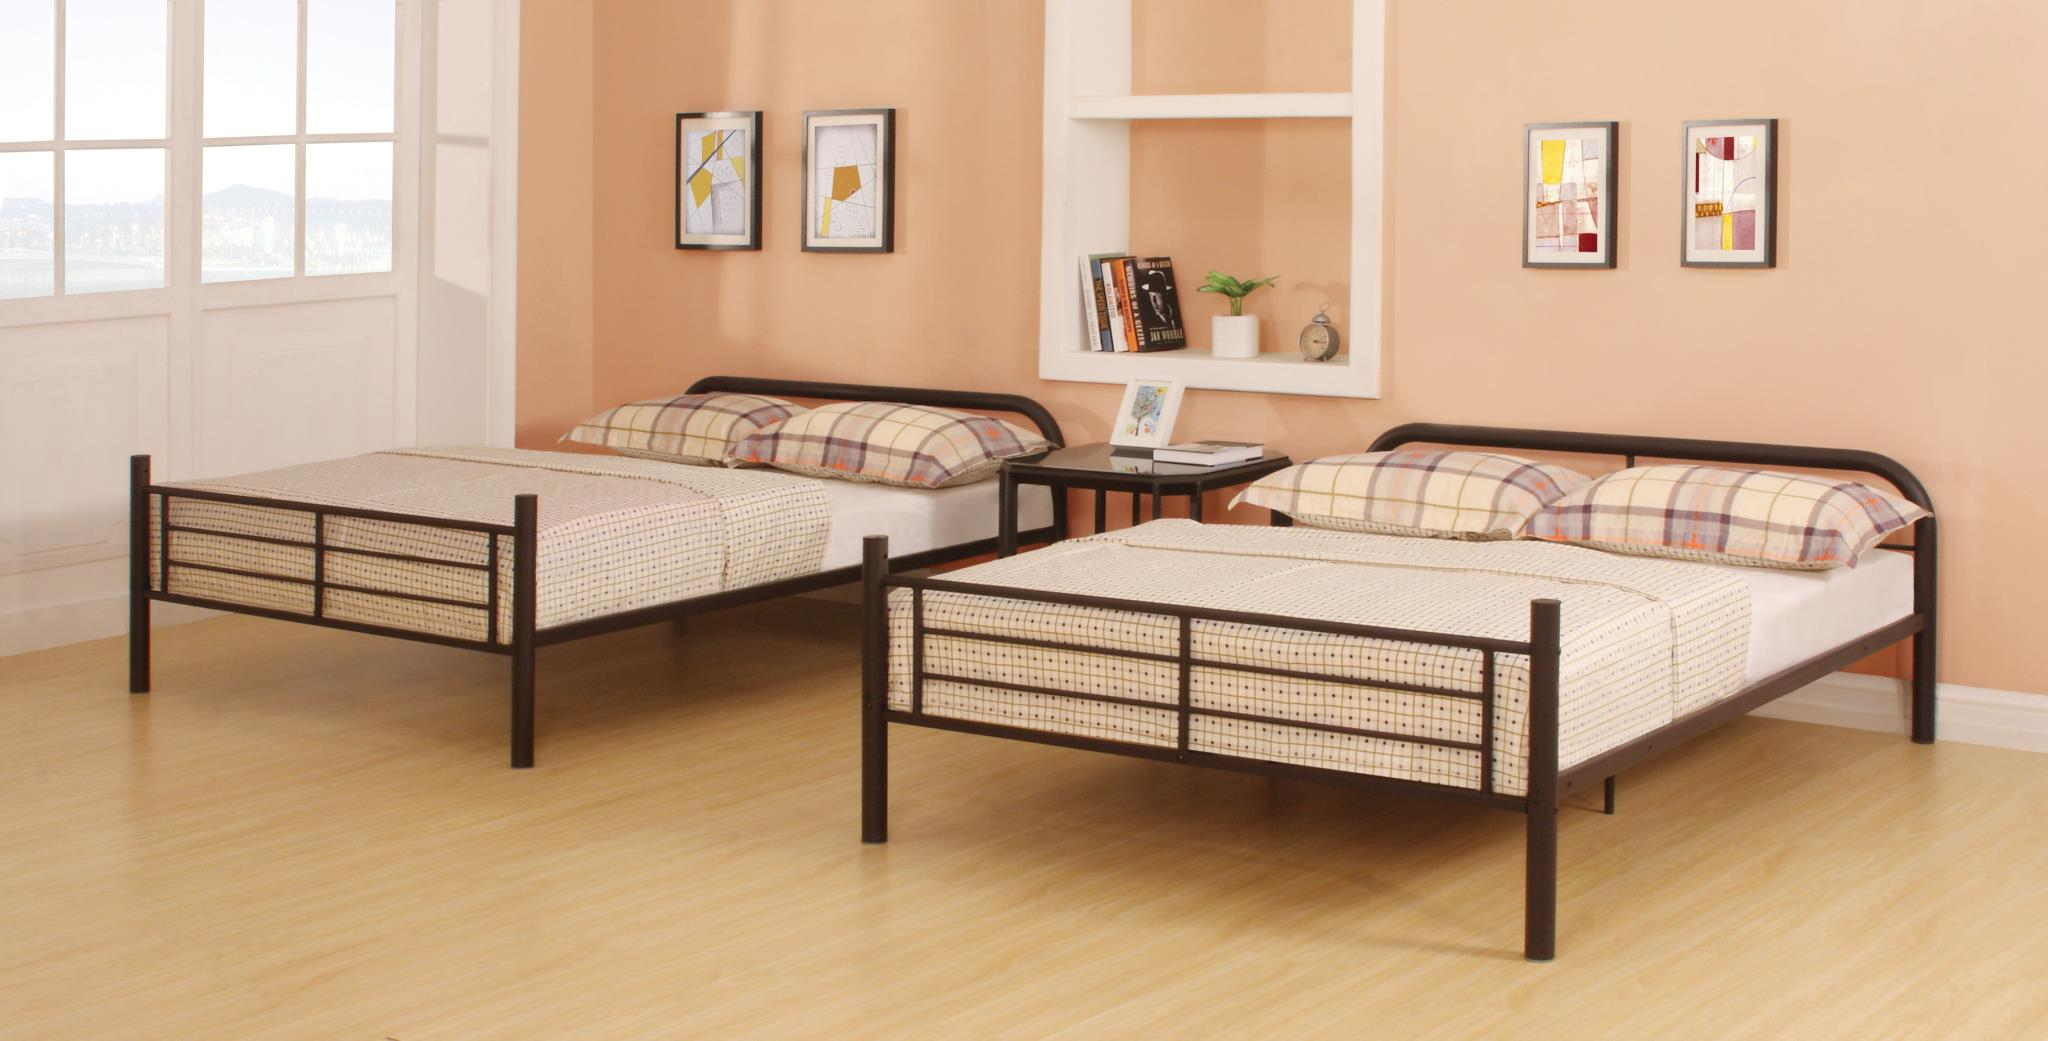 Full Bunk Beds Used Separately